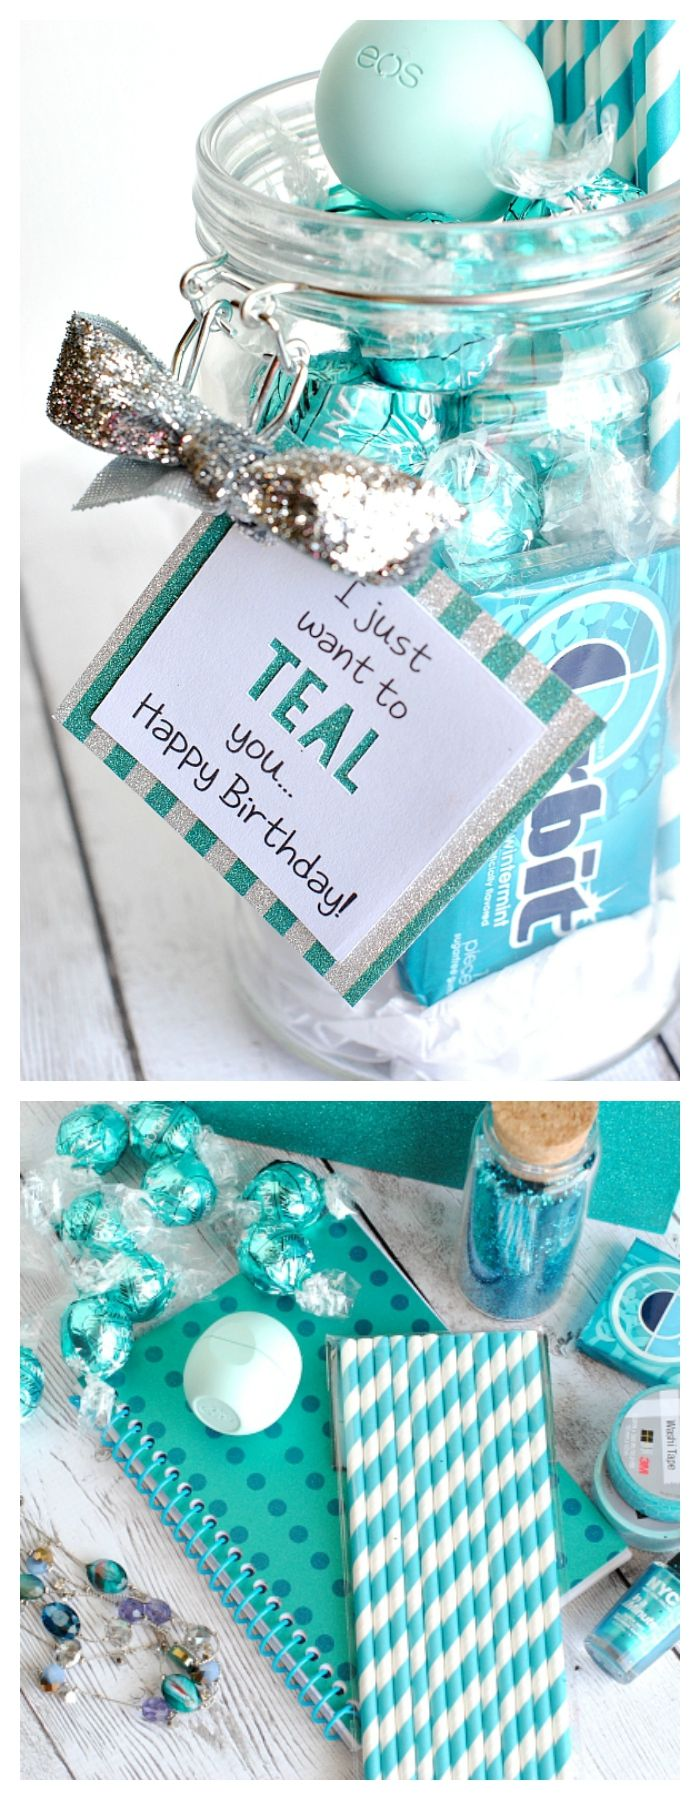 Cute Gift Idea! I just want to TEAL you Happy Birthday with a bunch of cute teal stuff